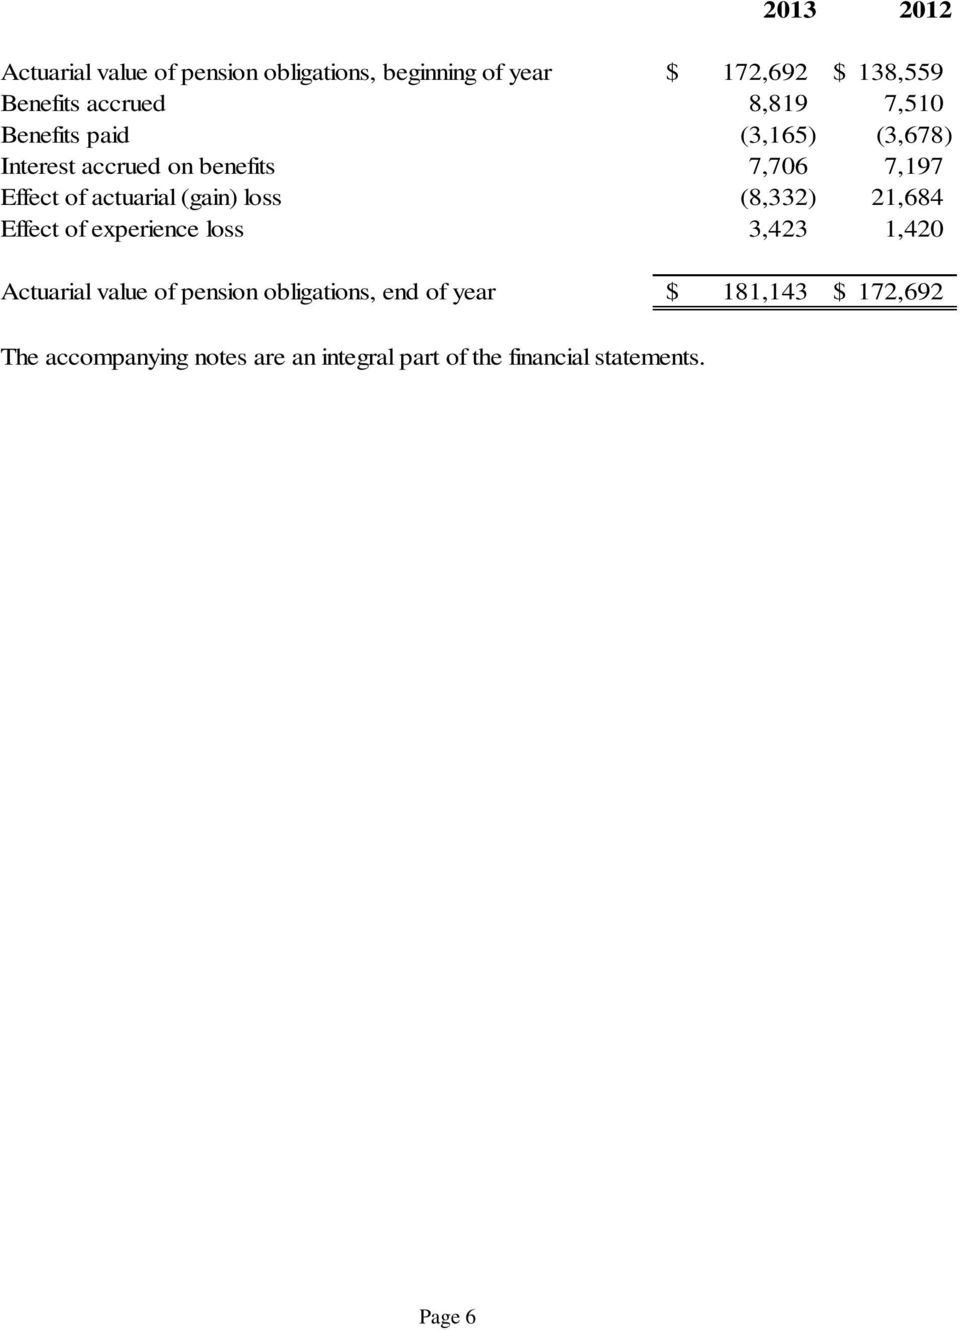 (gain) loss (8,332) 21,684 Effect of experience loss 3,423 1,420 Actuarial value of pension obligations,